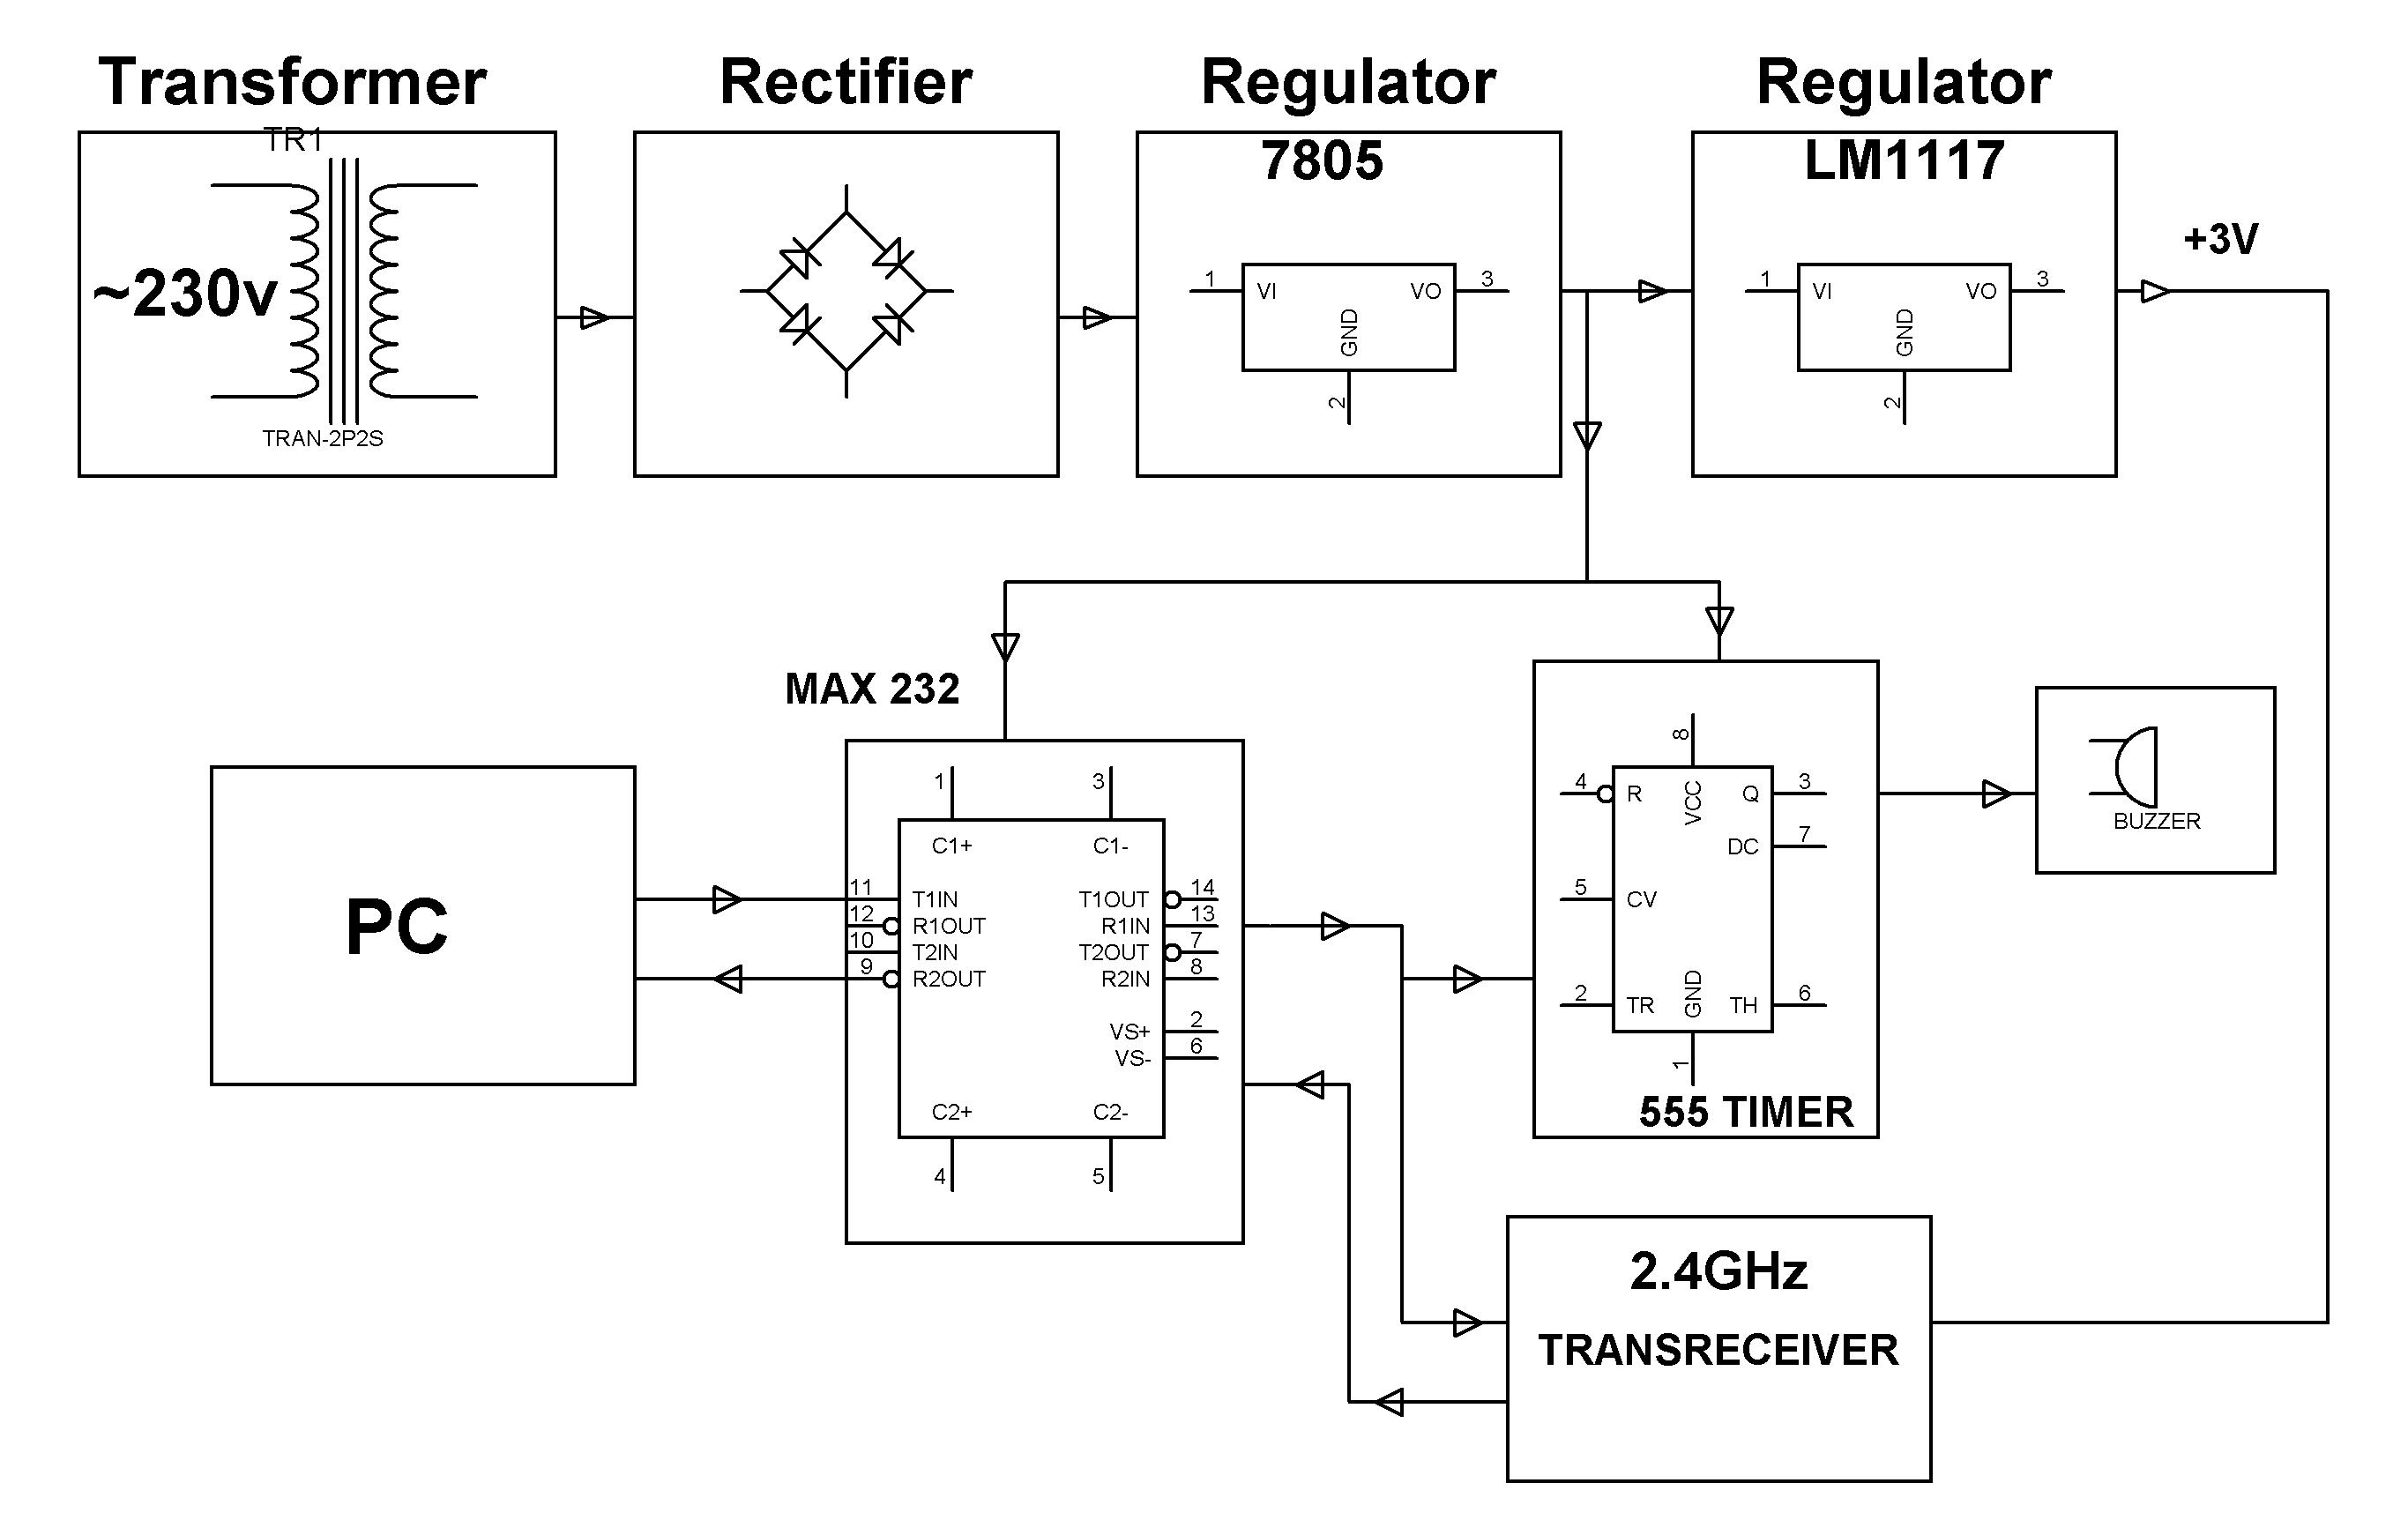 Overview of wireless pc communication system using transceiver wireless pc communication using transceiver block diagram ccuart Gallery